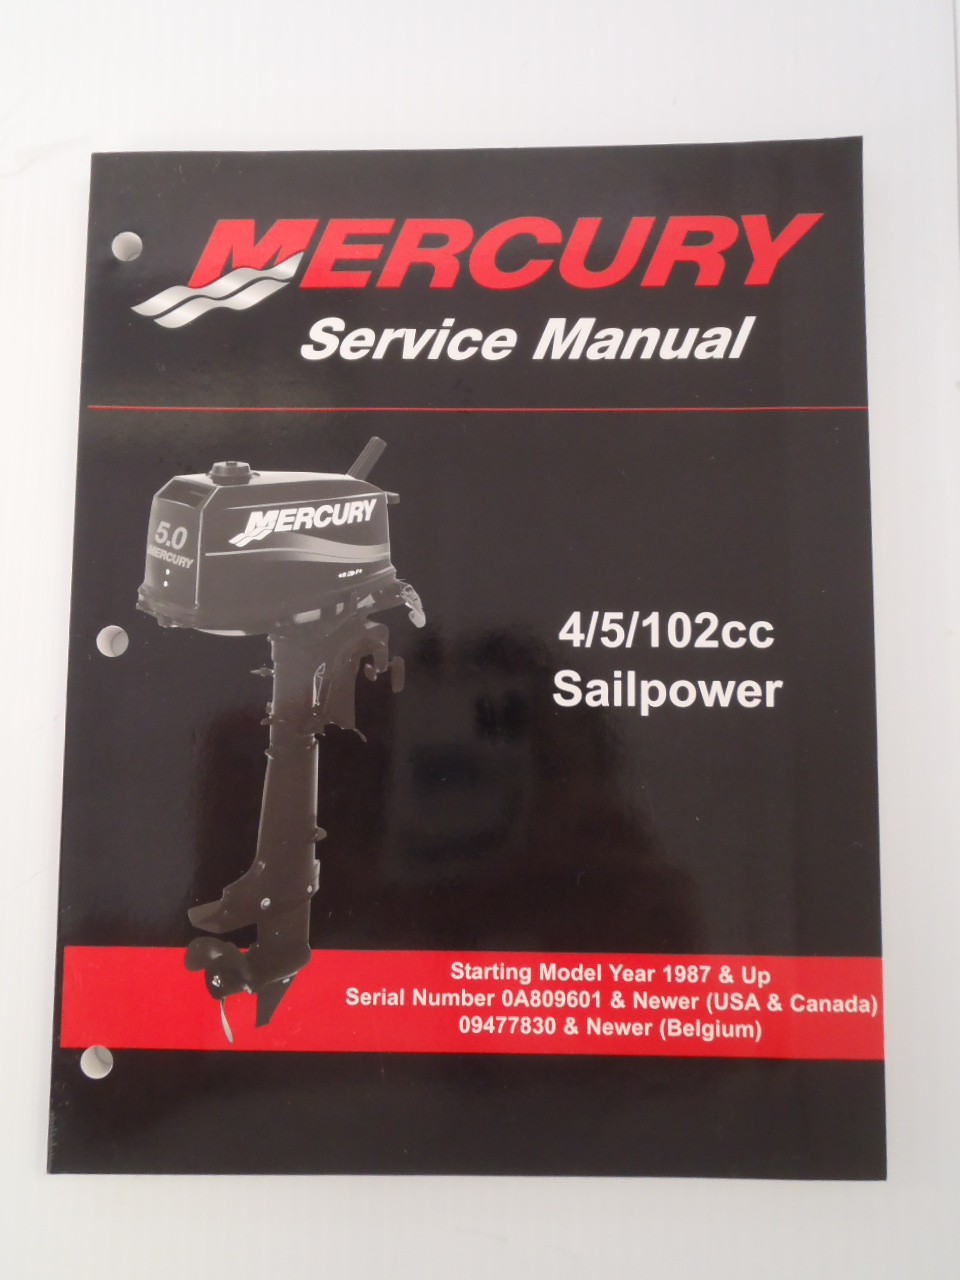 Used Mercury Outboards 4/5/102cc Sailpower Factory Service Manual  90-17308R02